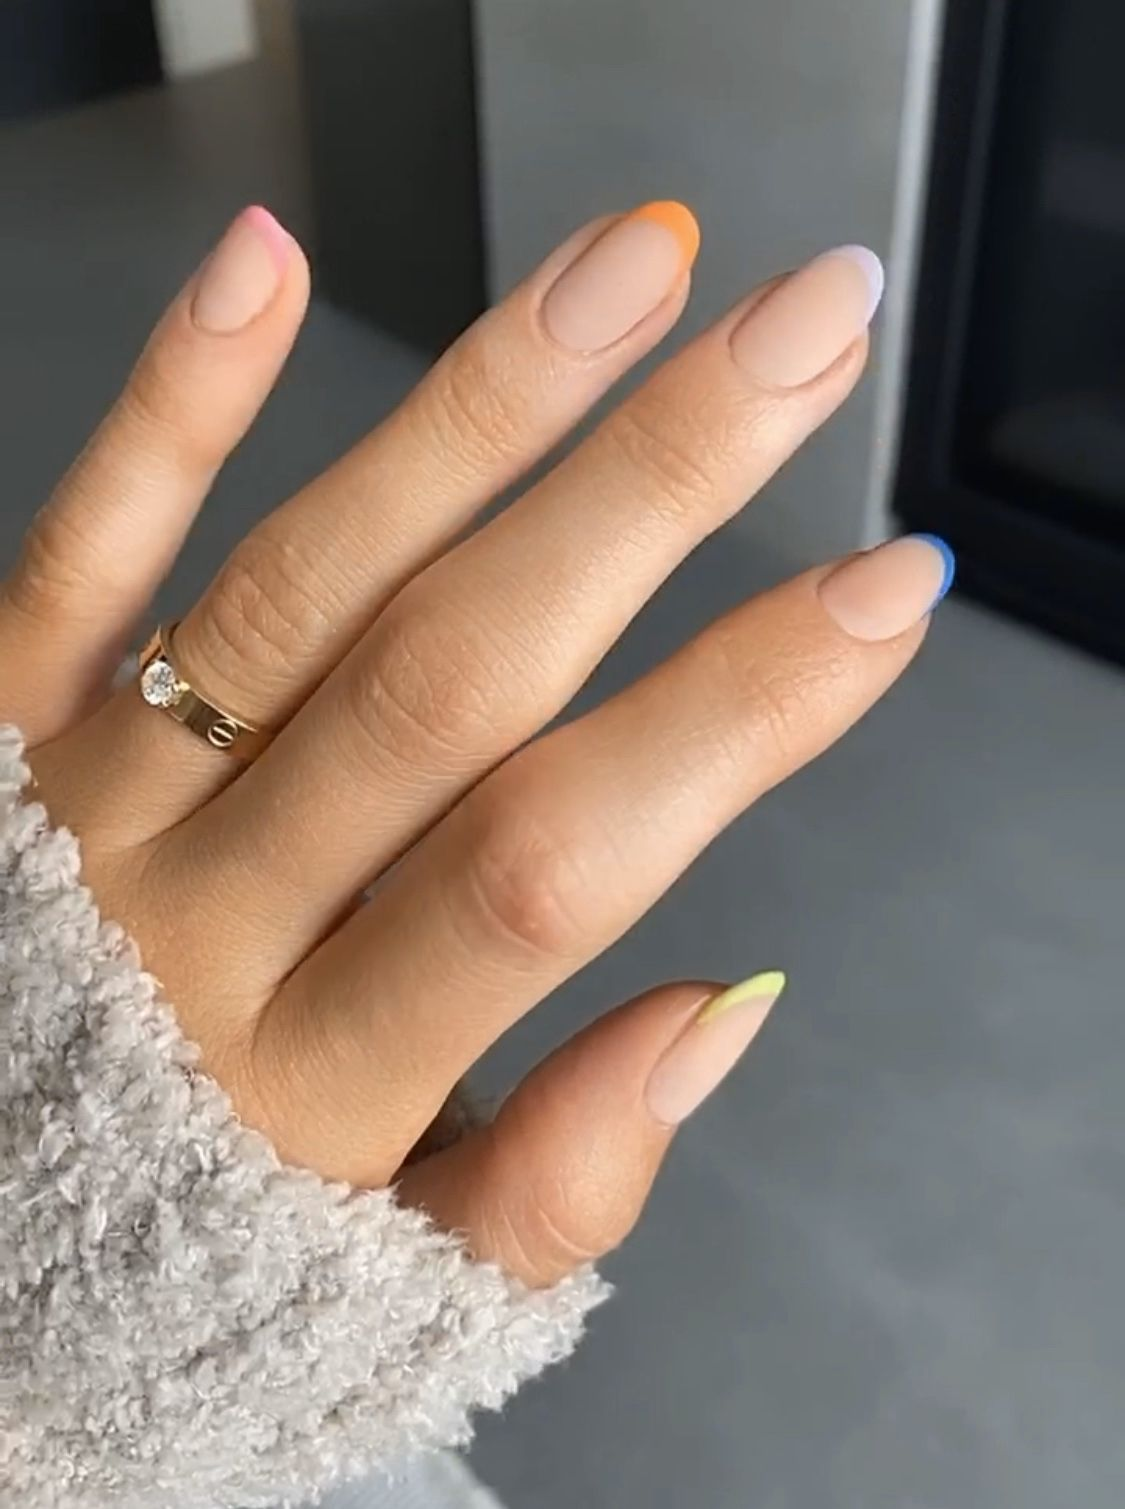 Kylie Jenner In 2020 Pretty Acrylic Nails Kylie Nails Minimalist Nails